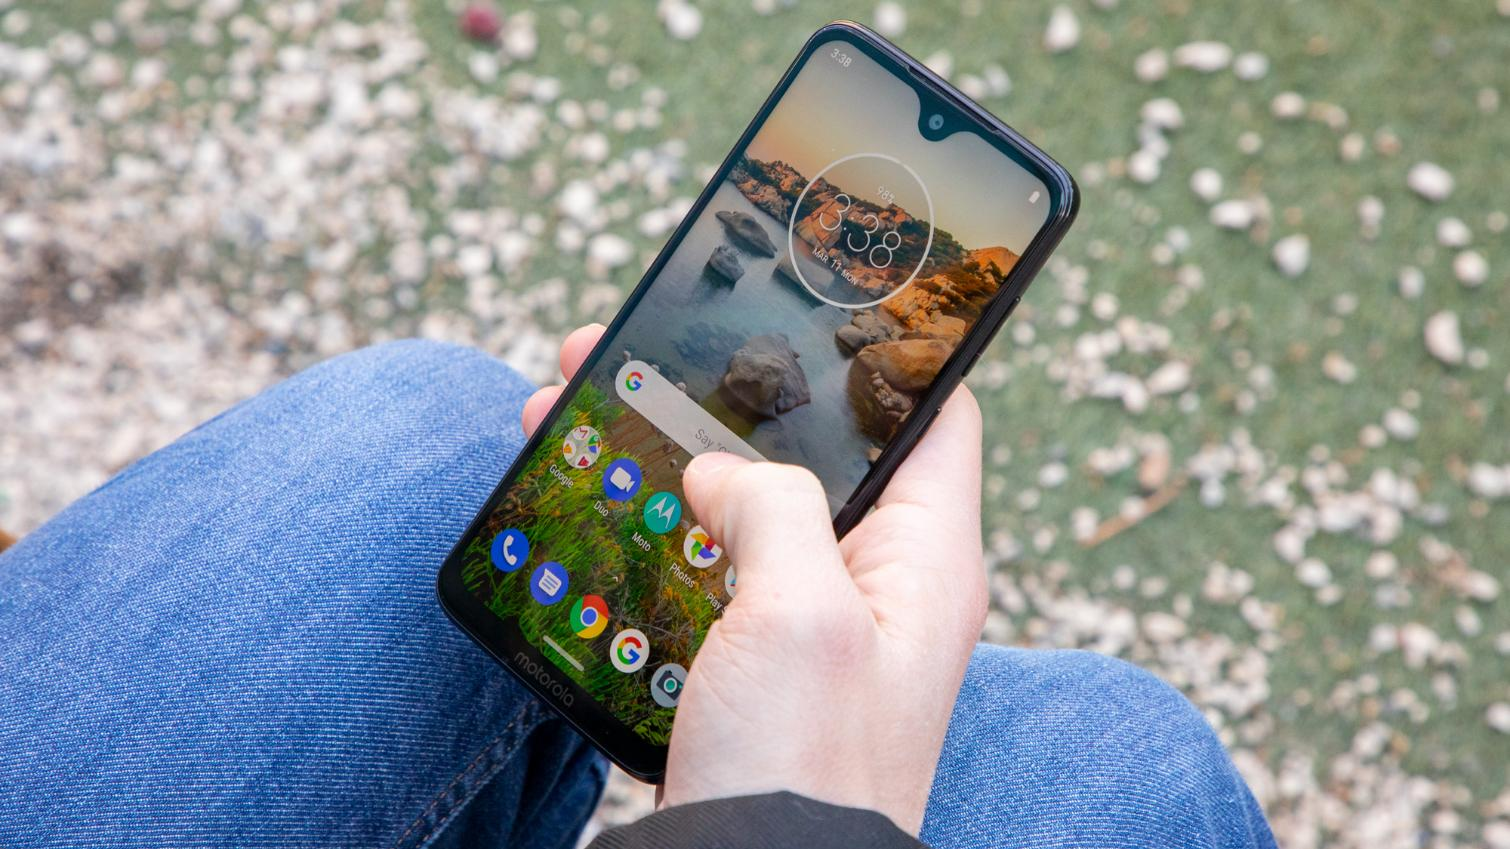 Best Cheap Phones 2019: Top Android Picks Under $300